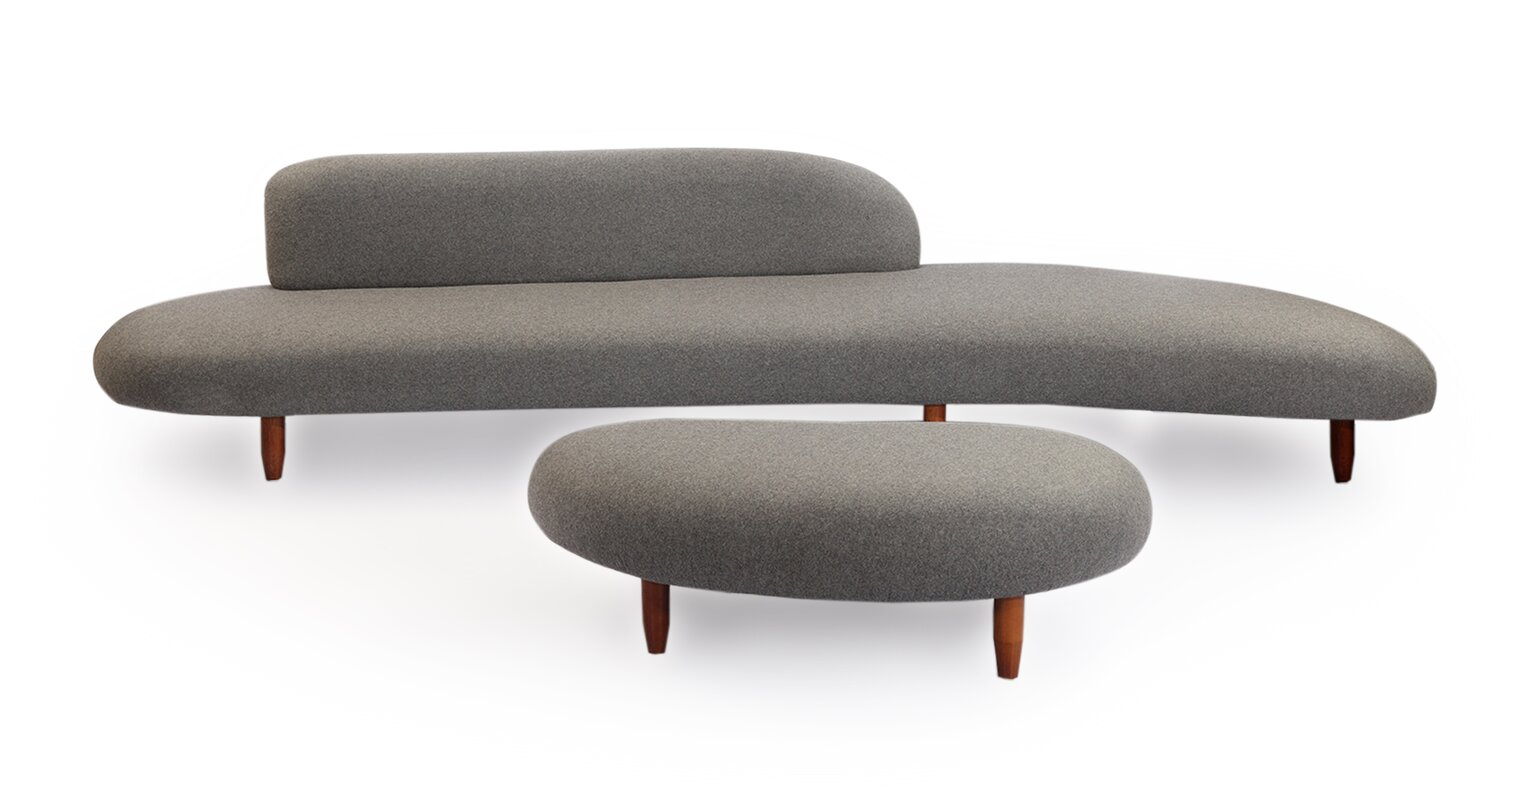 potvin mid century modern sofa and ottoman set. brayden studio potvin mid century modern sofa and ottoman set